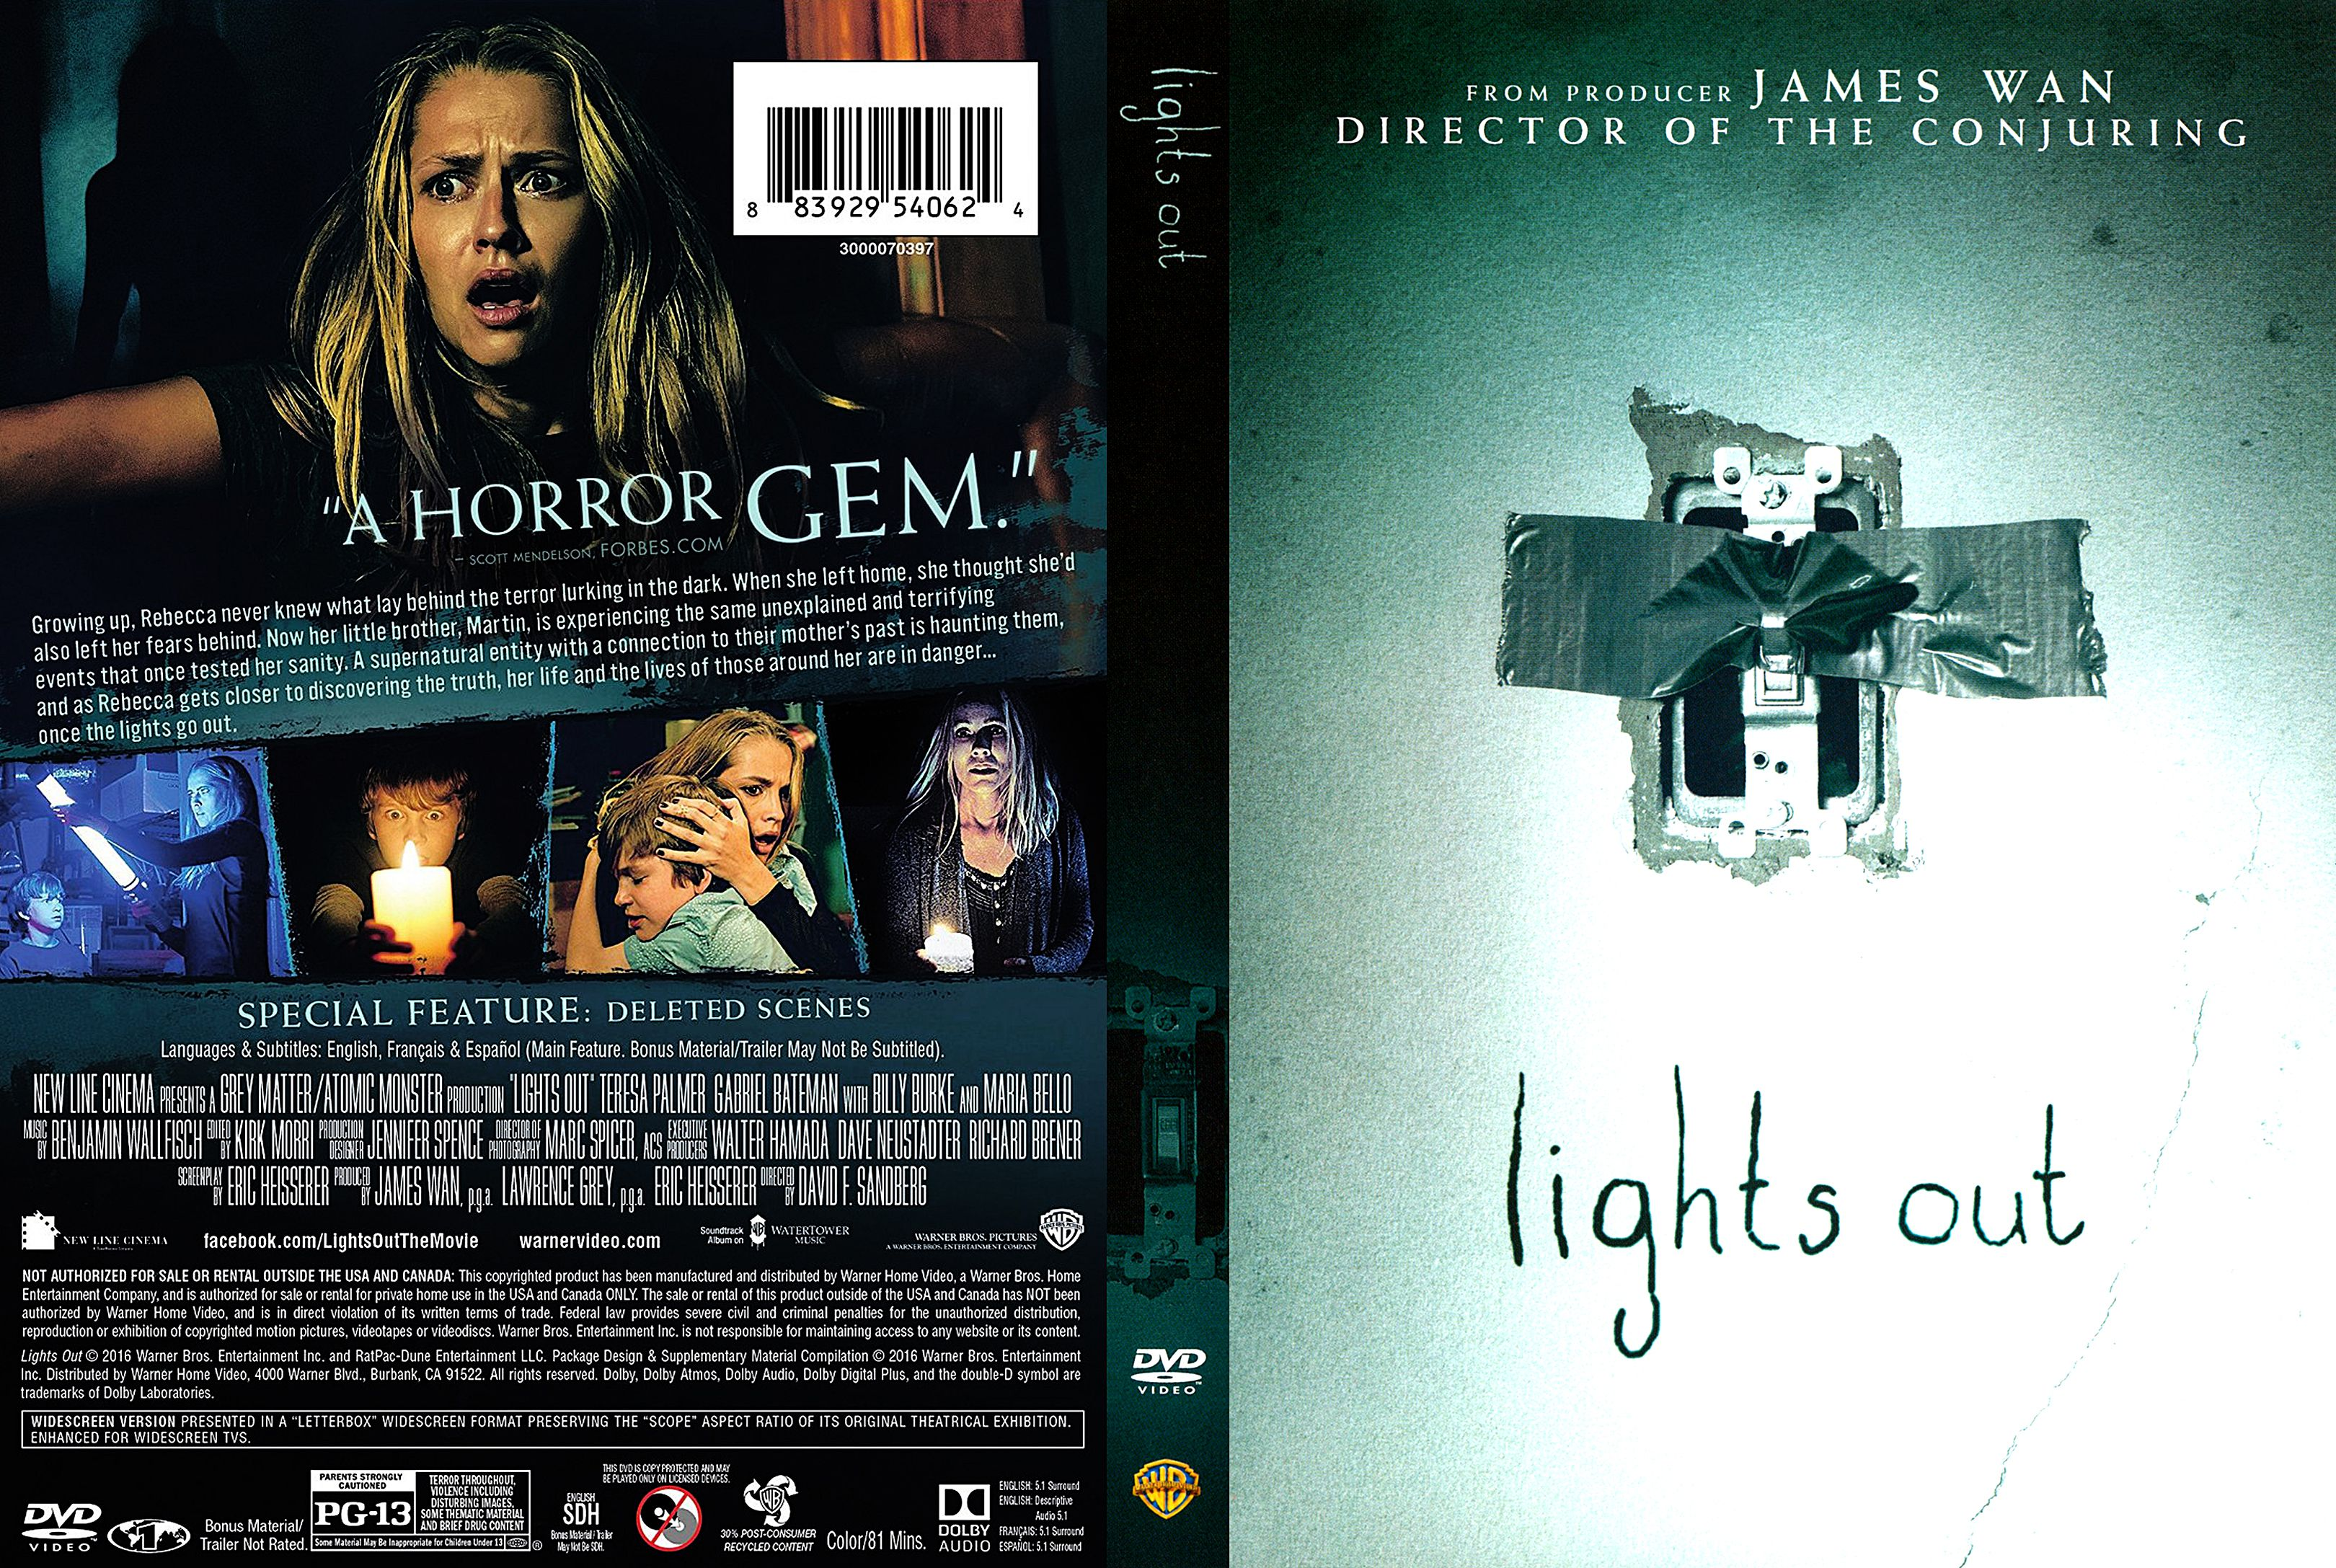 Lights Out DVD Cover ...